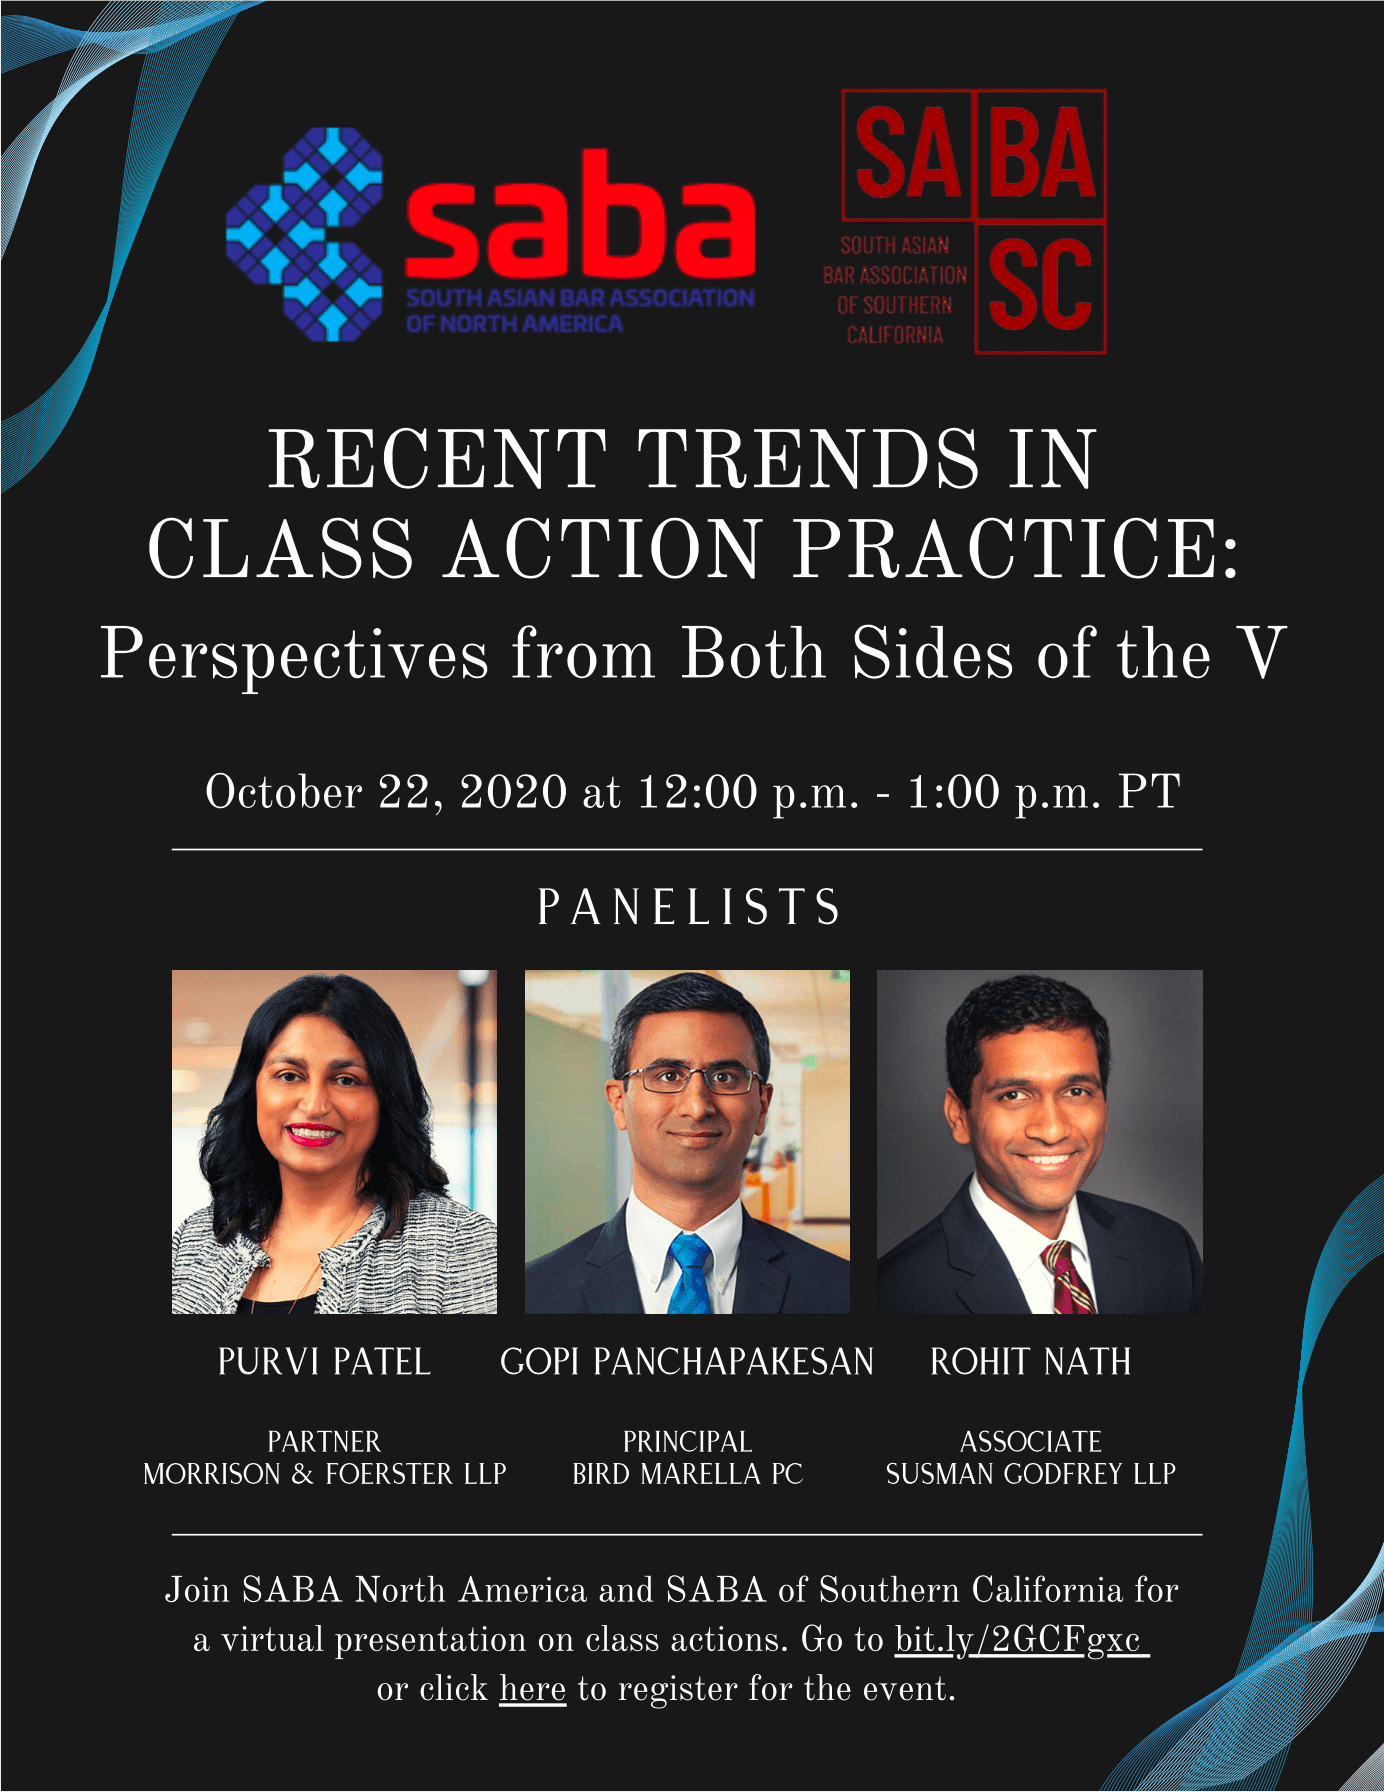 Recent Trends in Class Action Practice: Perspectives from Both Sides of the V - October 22, 2020, 12:00-1:00 PM